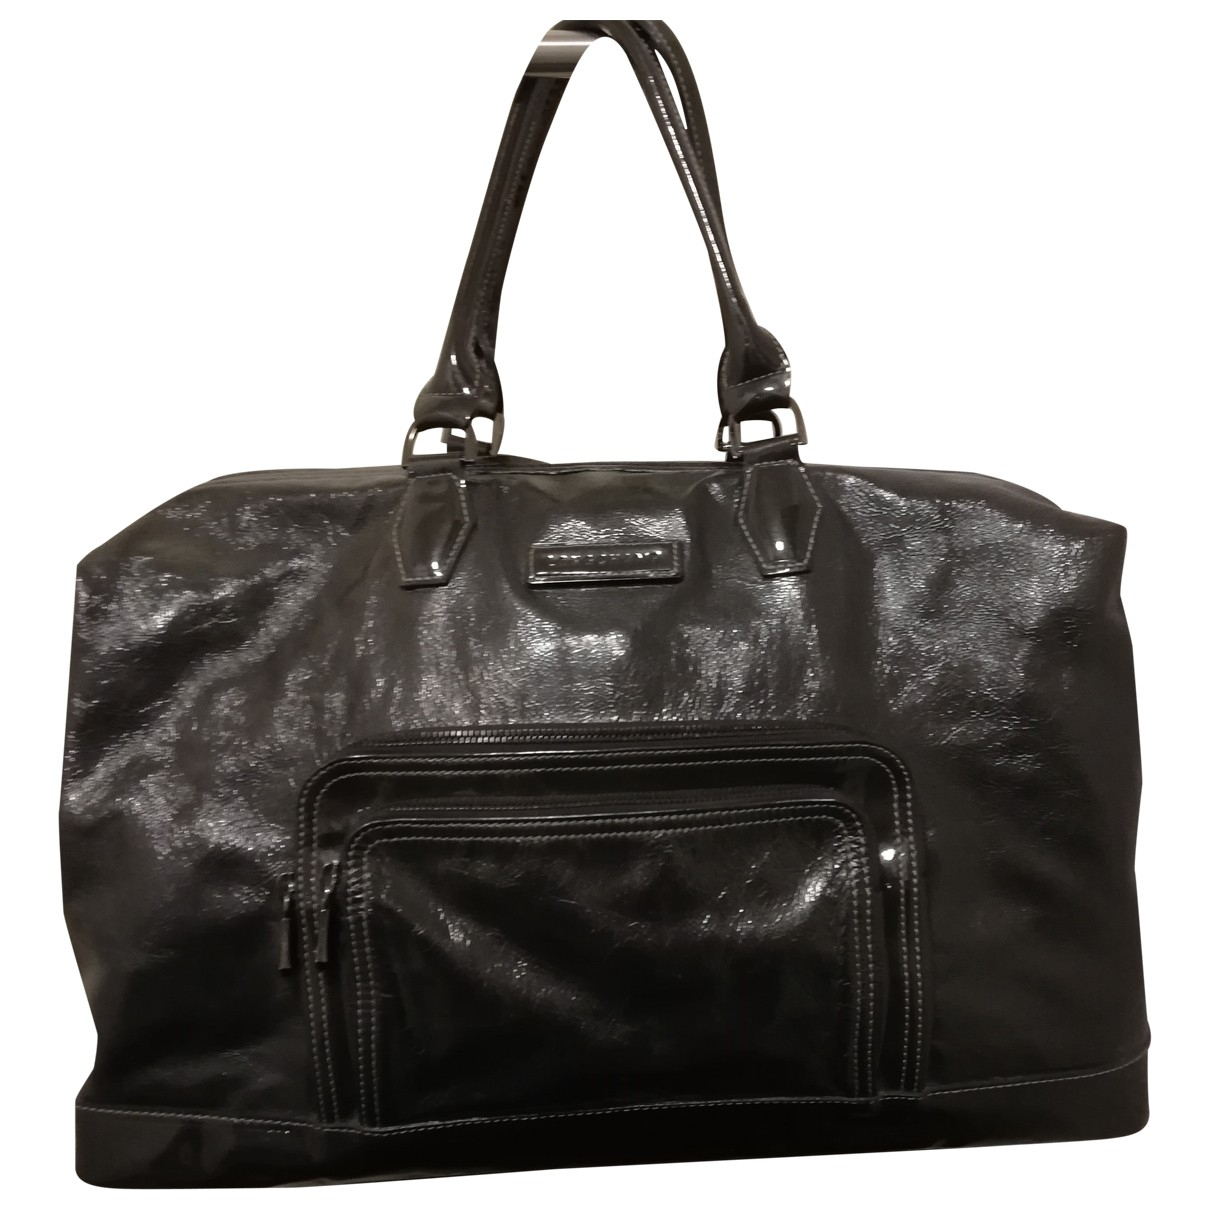 Longchamp Légende Anthracite Patent leather handbag for Women \N